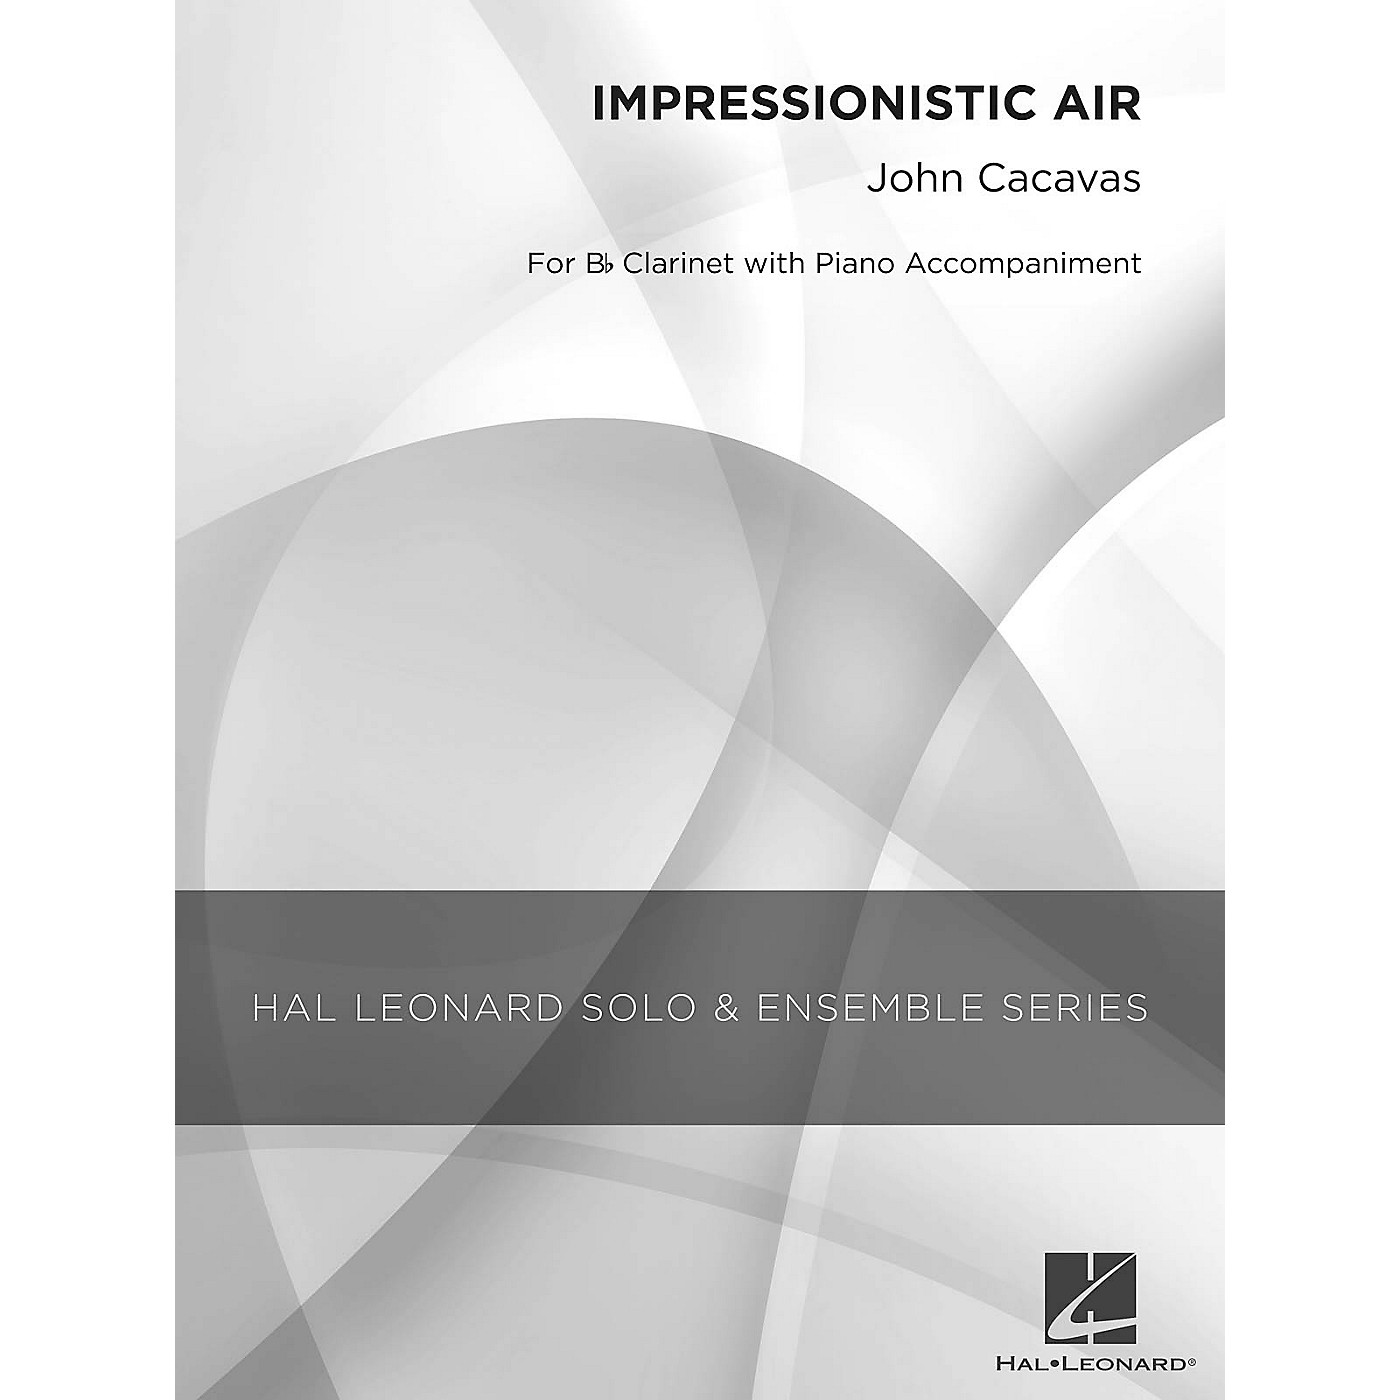 Hal Leonard Impressionistic Air (Grade 3 Clarinet Solo) Concert Band Level 2 Composed by John Cacavas thumbnail